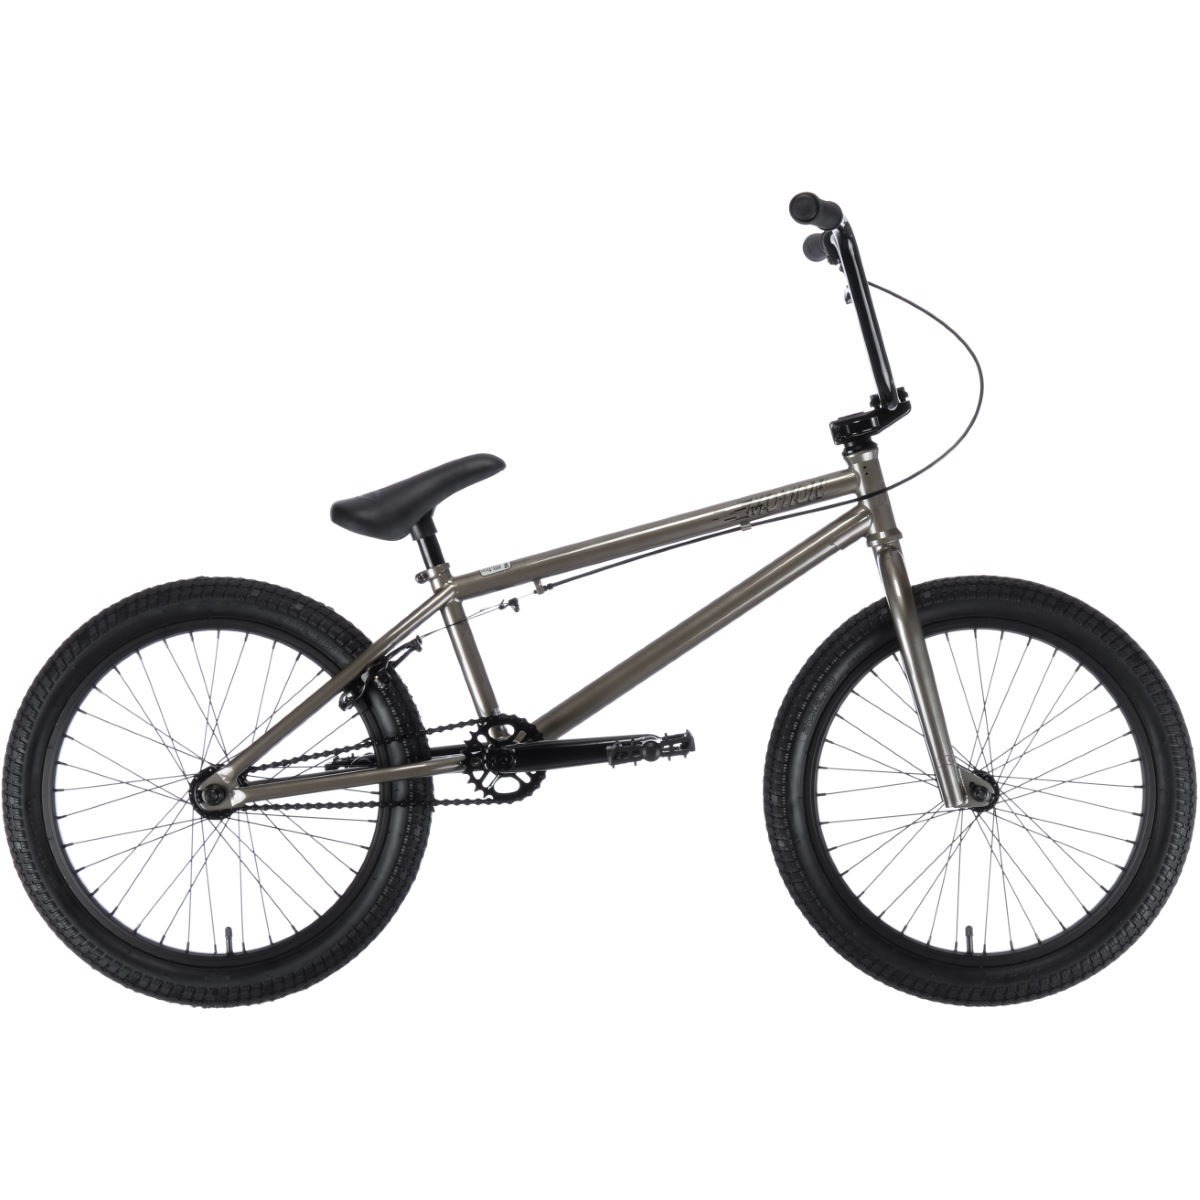 Ruption Motion BMX Bike - Bicicletas de BMX Freestyle